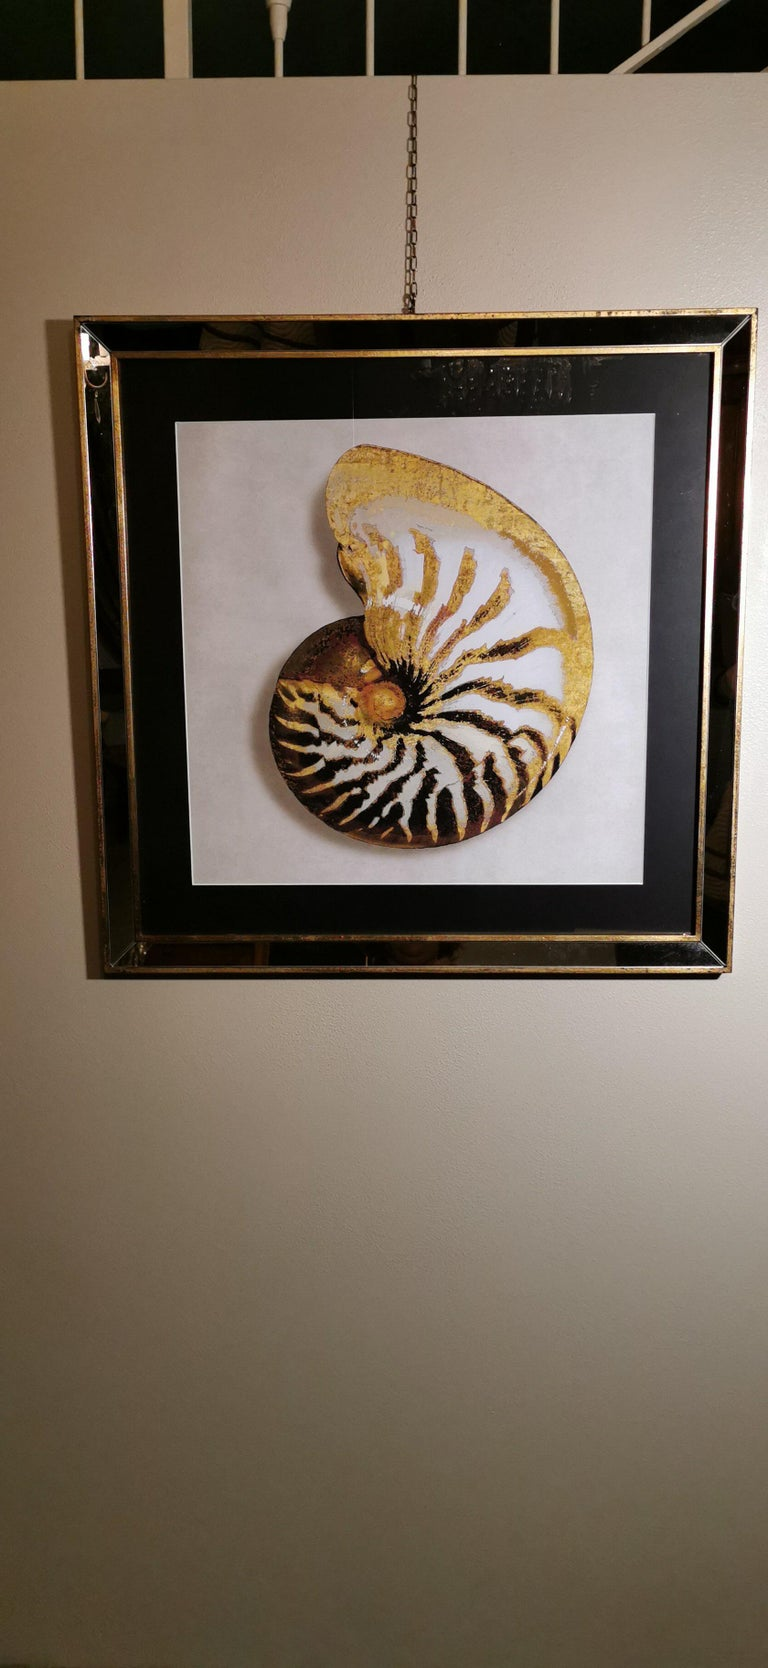 Elegant hand-colored print representing a golden shell. The handcrafted frame is in gilded wood with mirror inserts. This print is made with a special technique called giclée. The giclée printing technique is an individual high definition